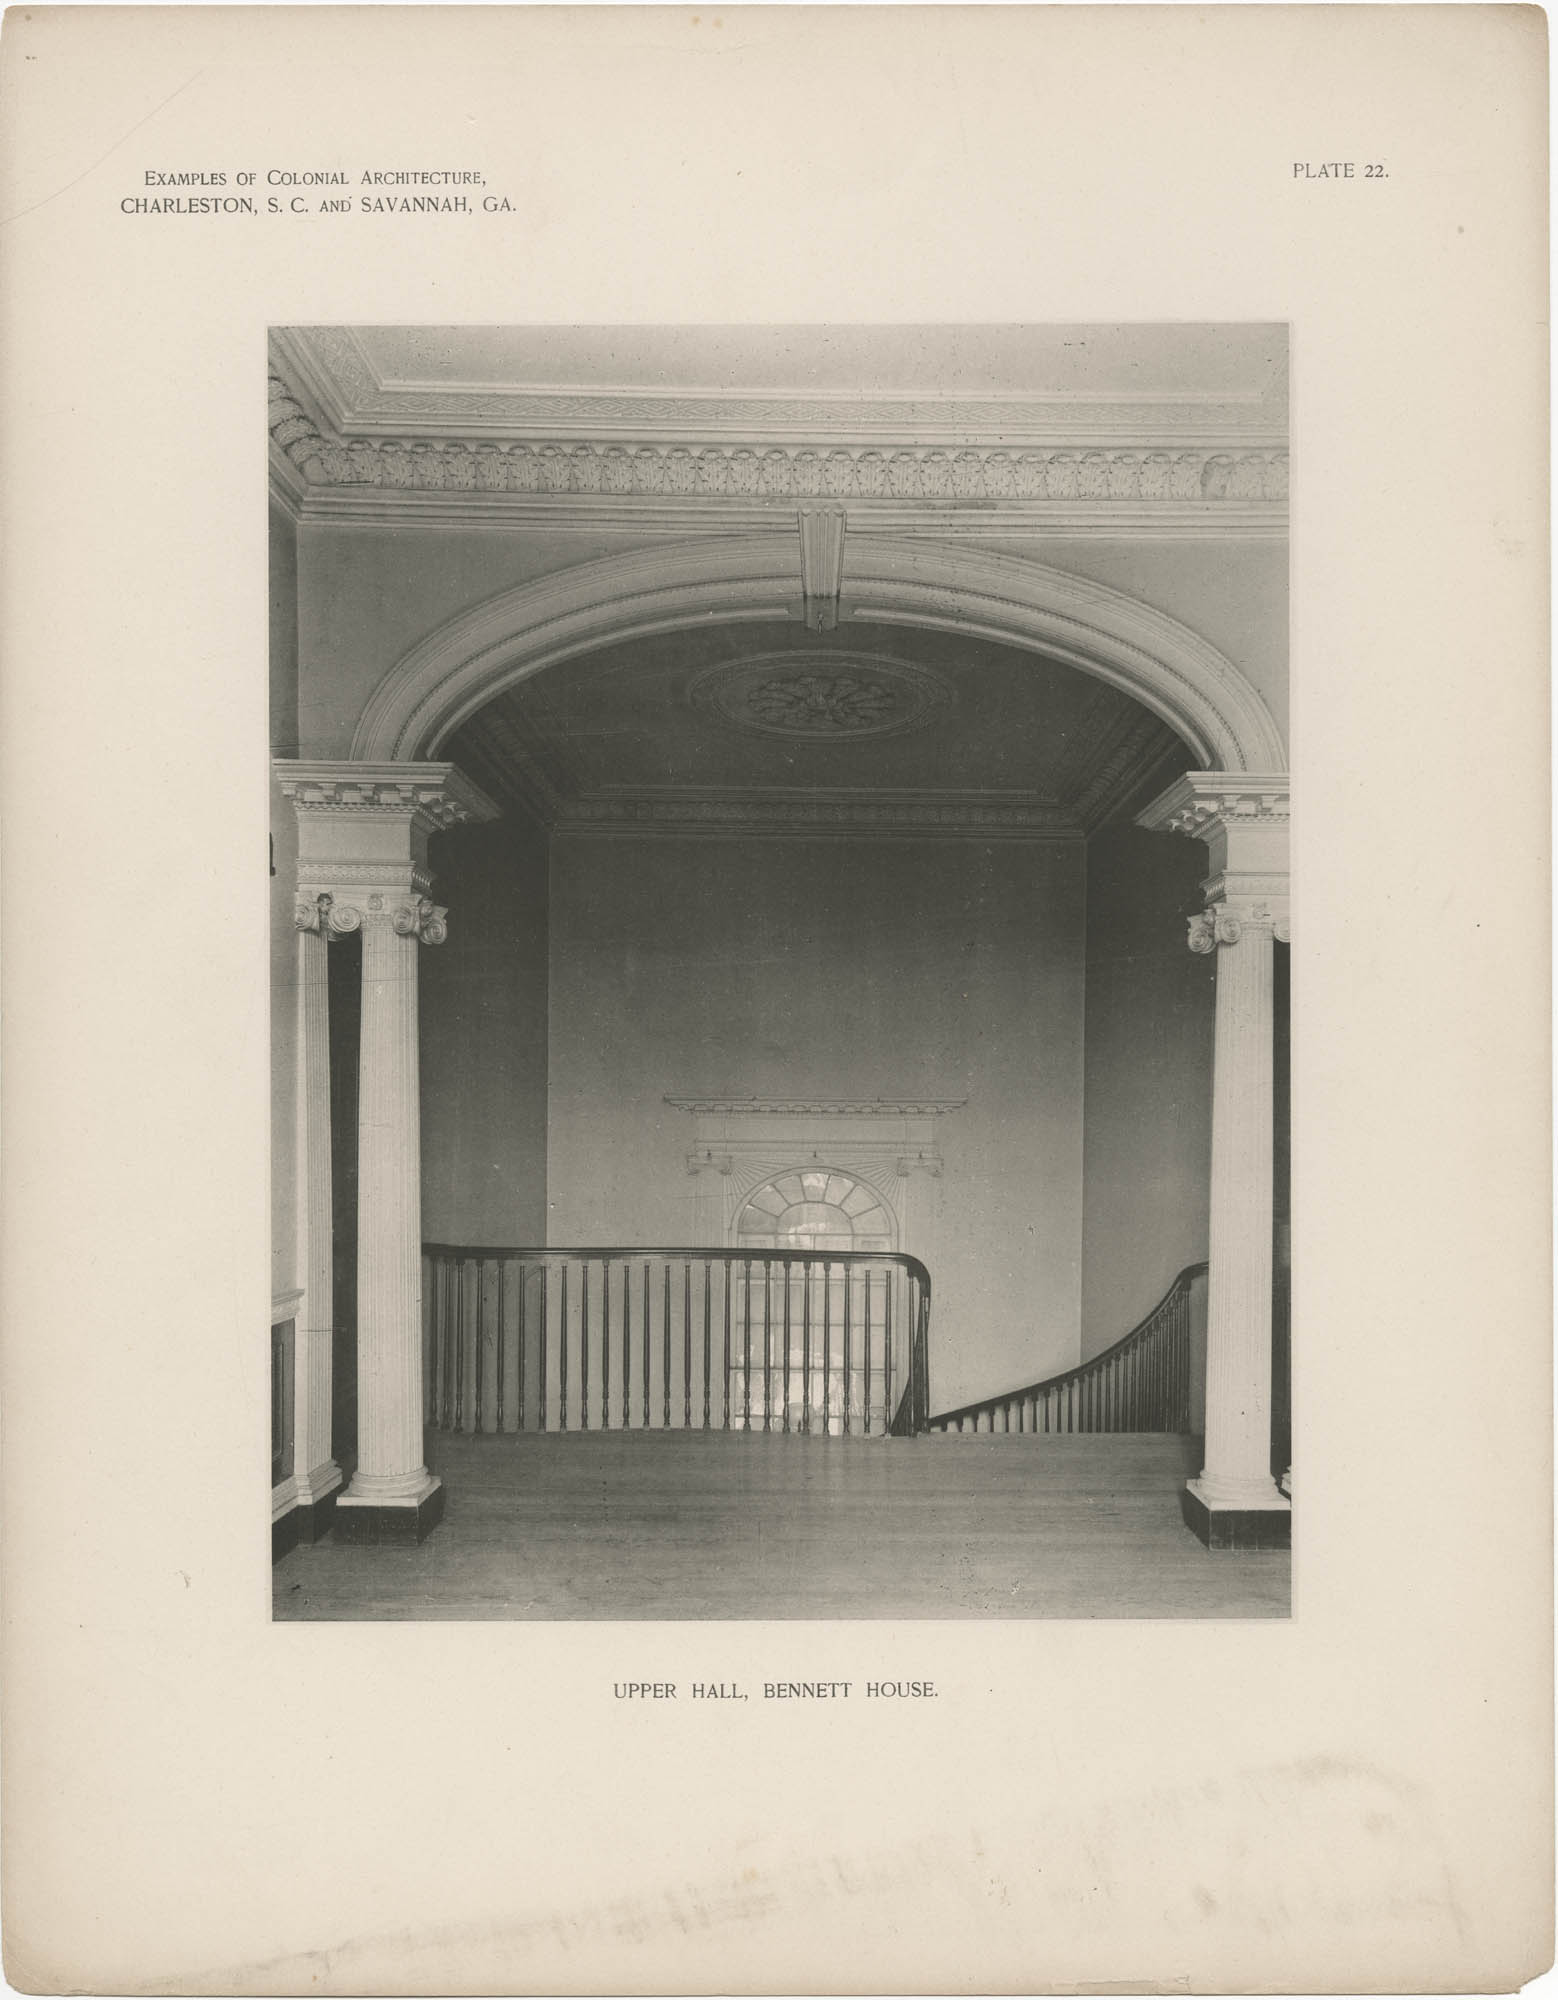 Plate 22: Upper Hall, Bennett House